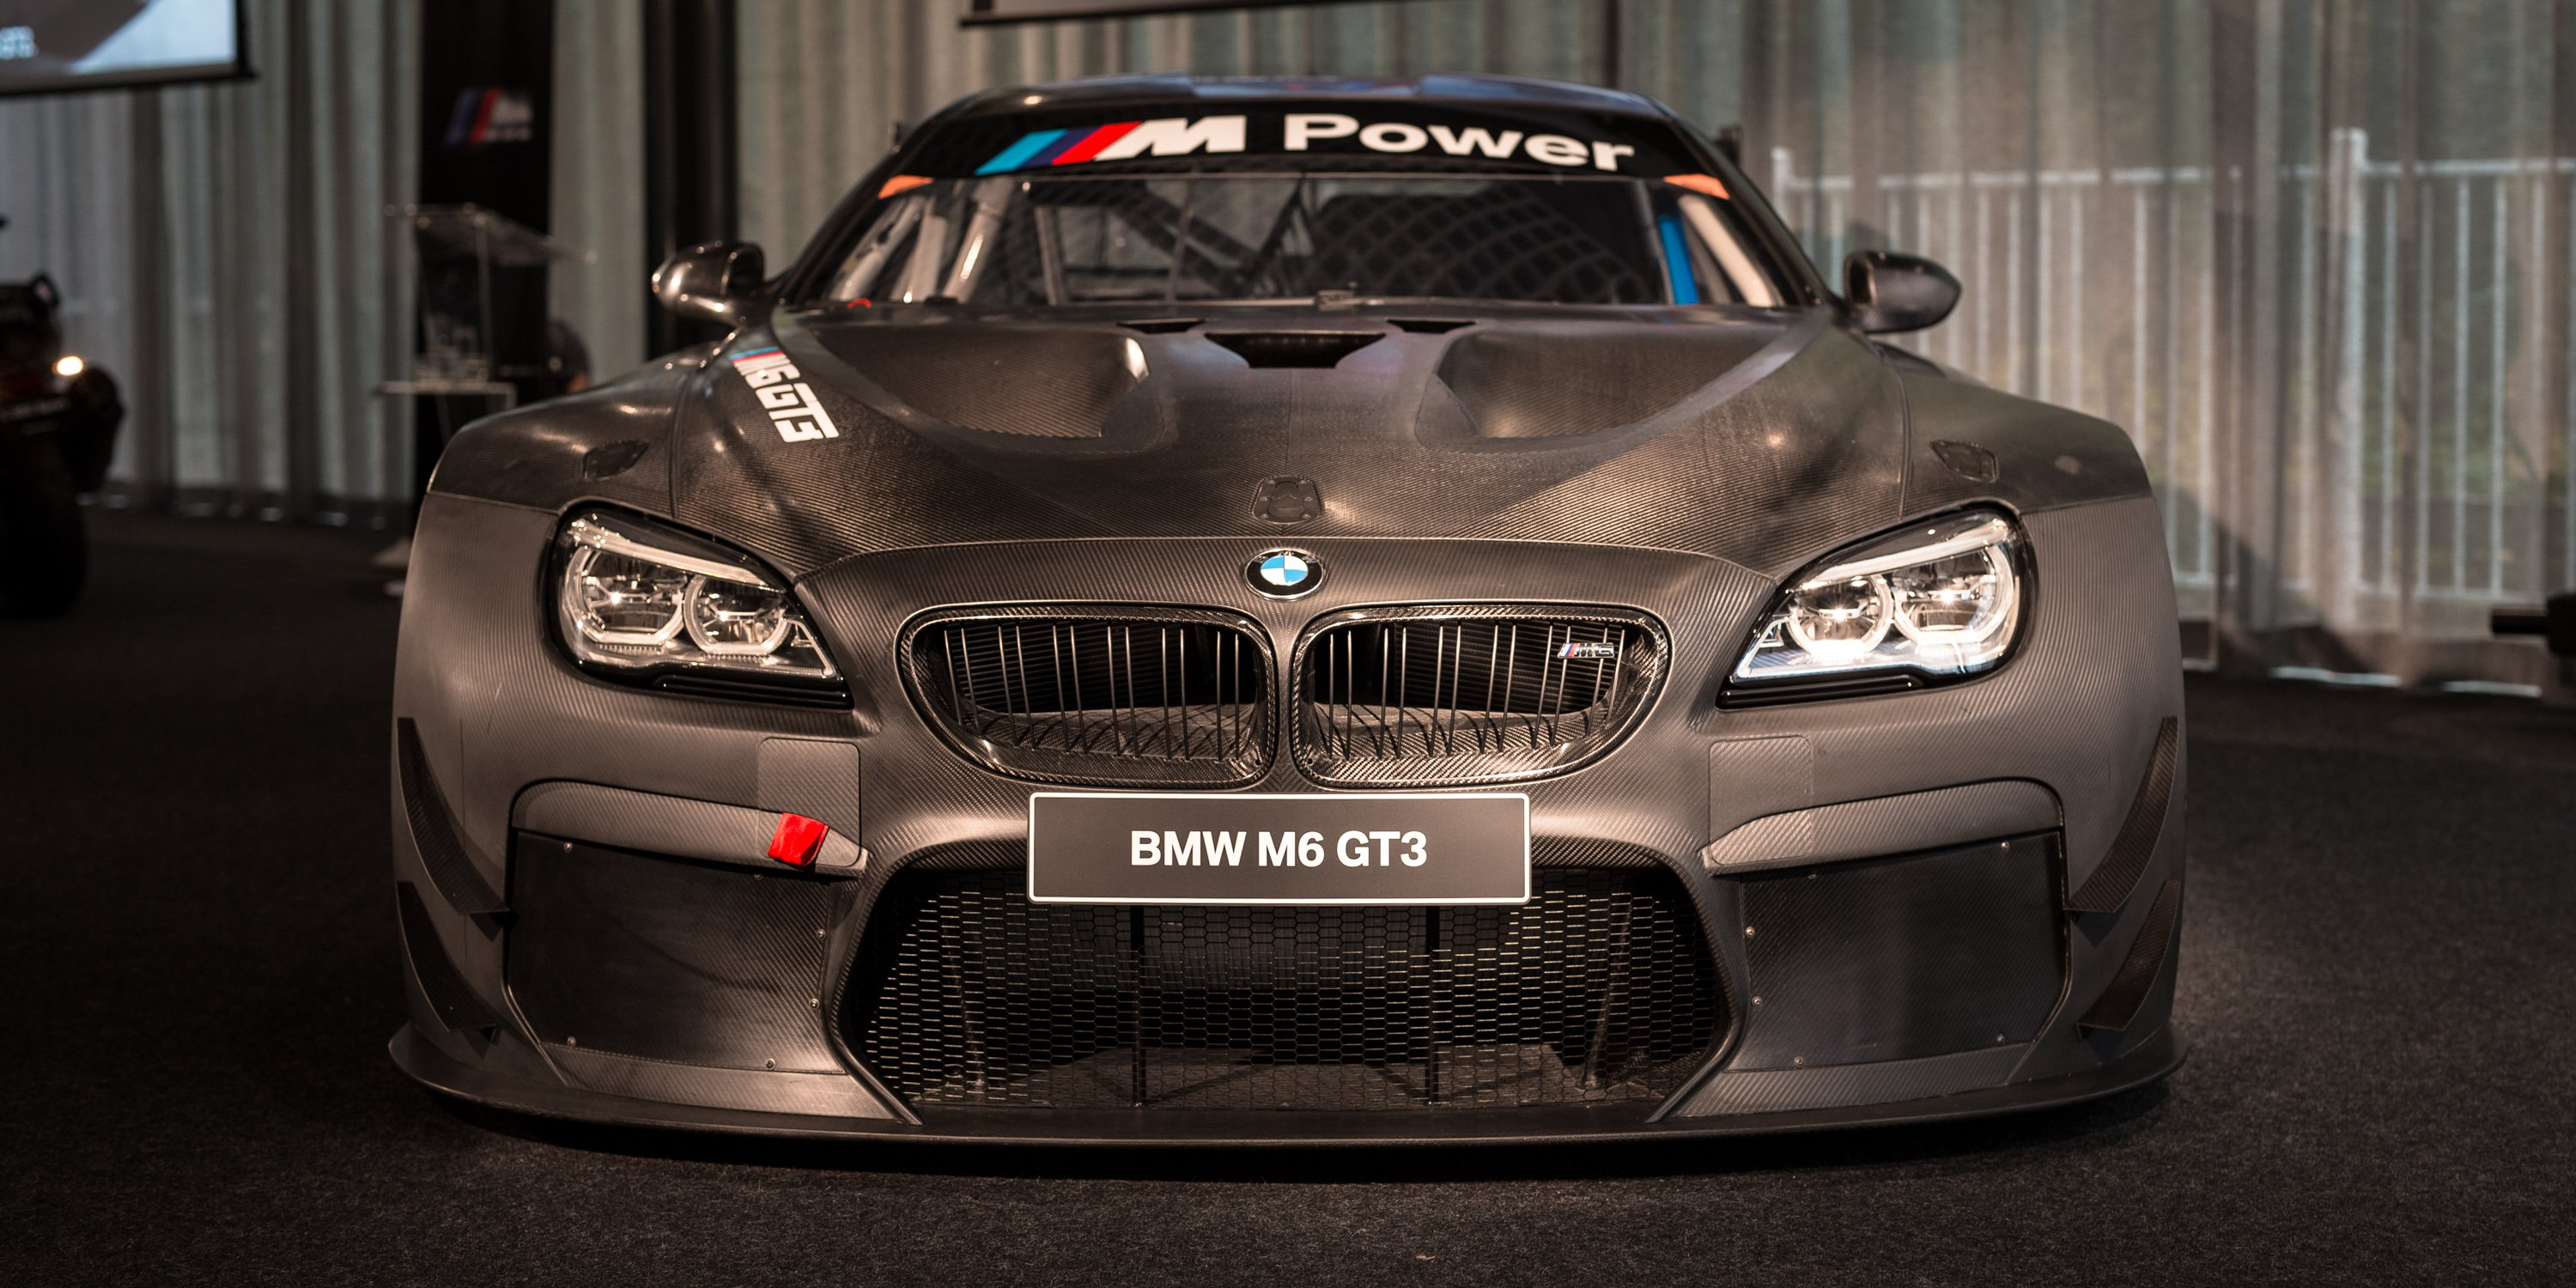 2016 Bmw M6 Gt3 Twin Turbo Racer Unveiled In Melbourne